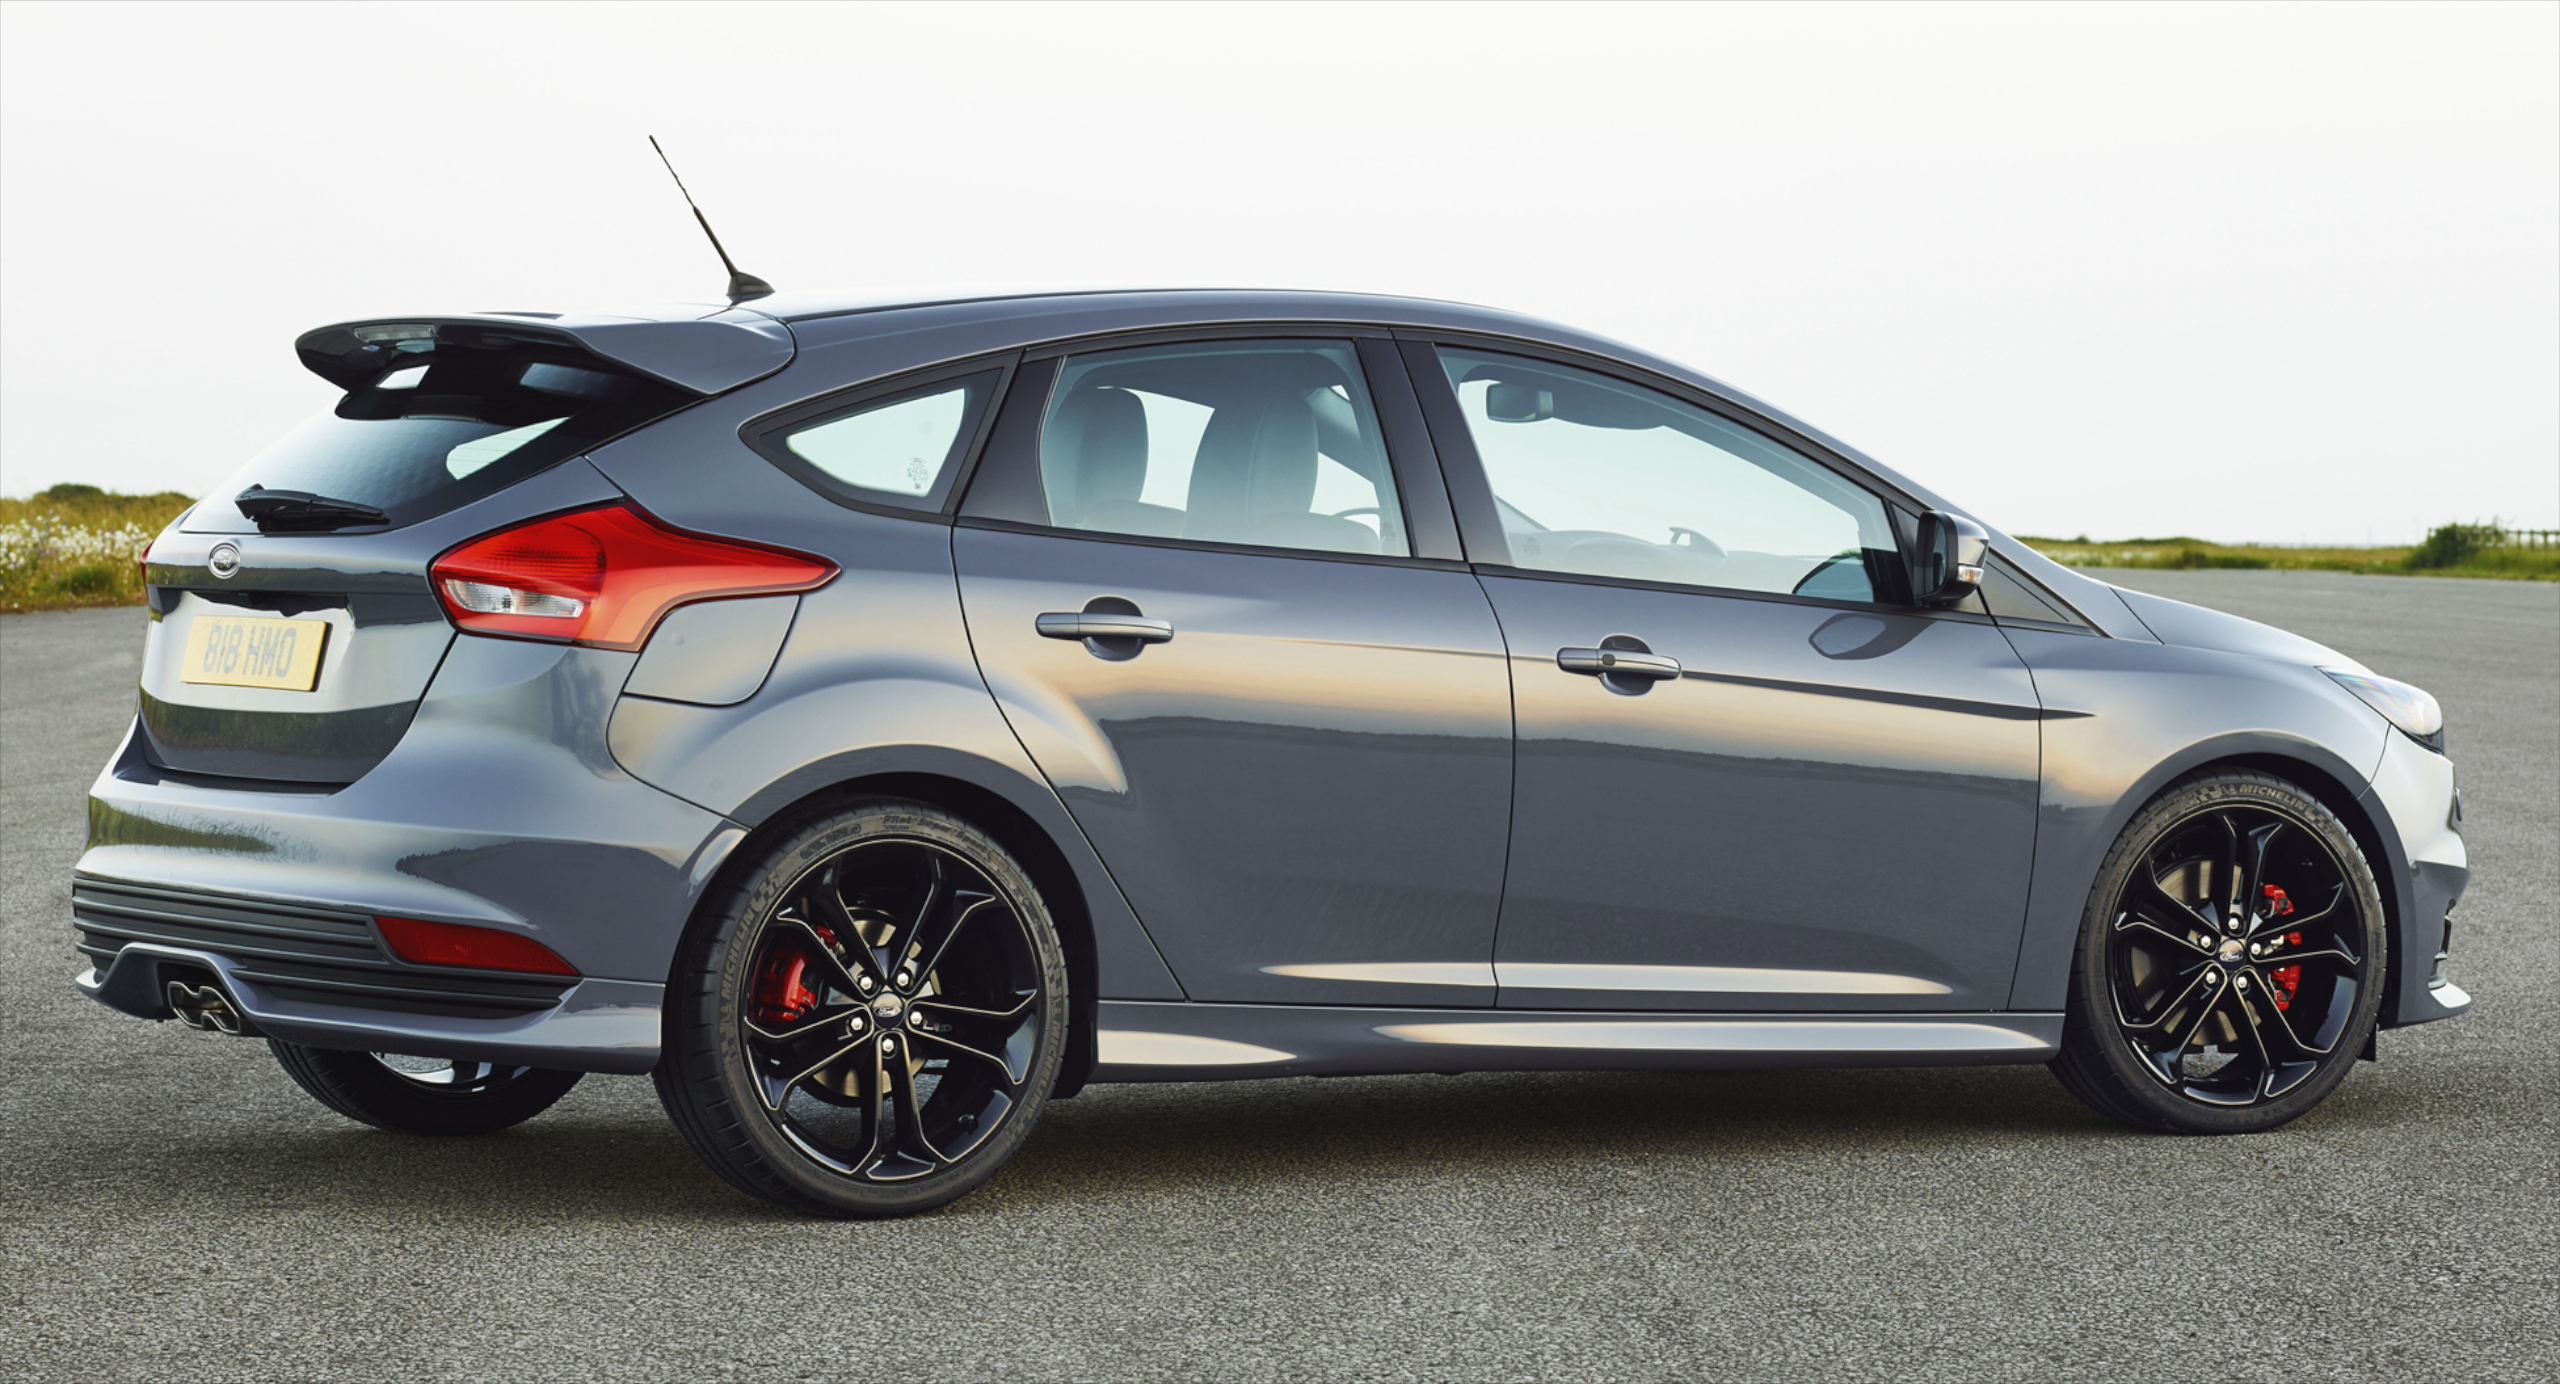 c346 ford focus st facelift now in petrol and diesel paul tan image 256030. Black Bedroom Furniture Sets. Home Design Ideas